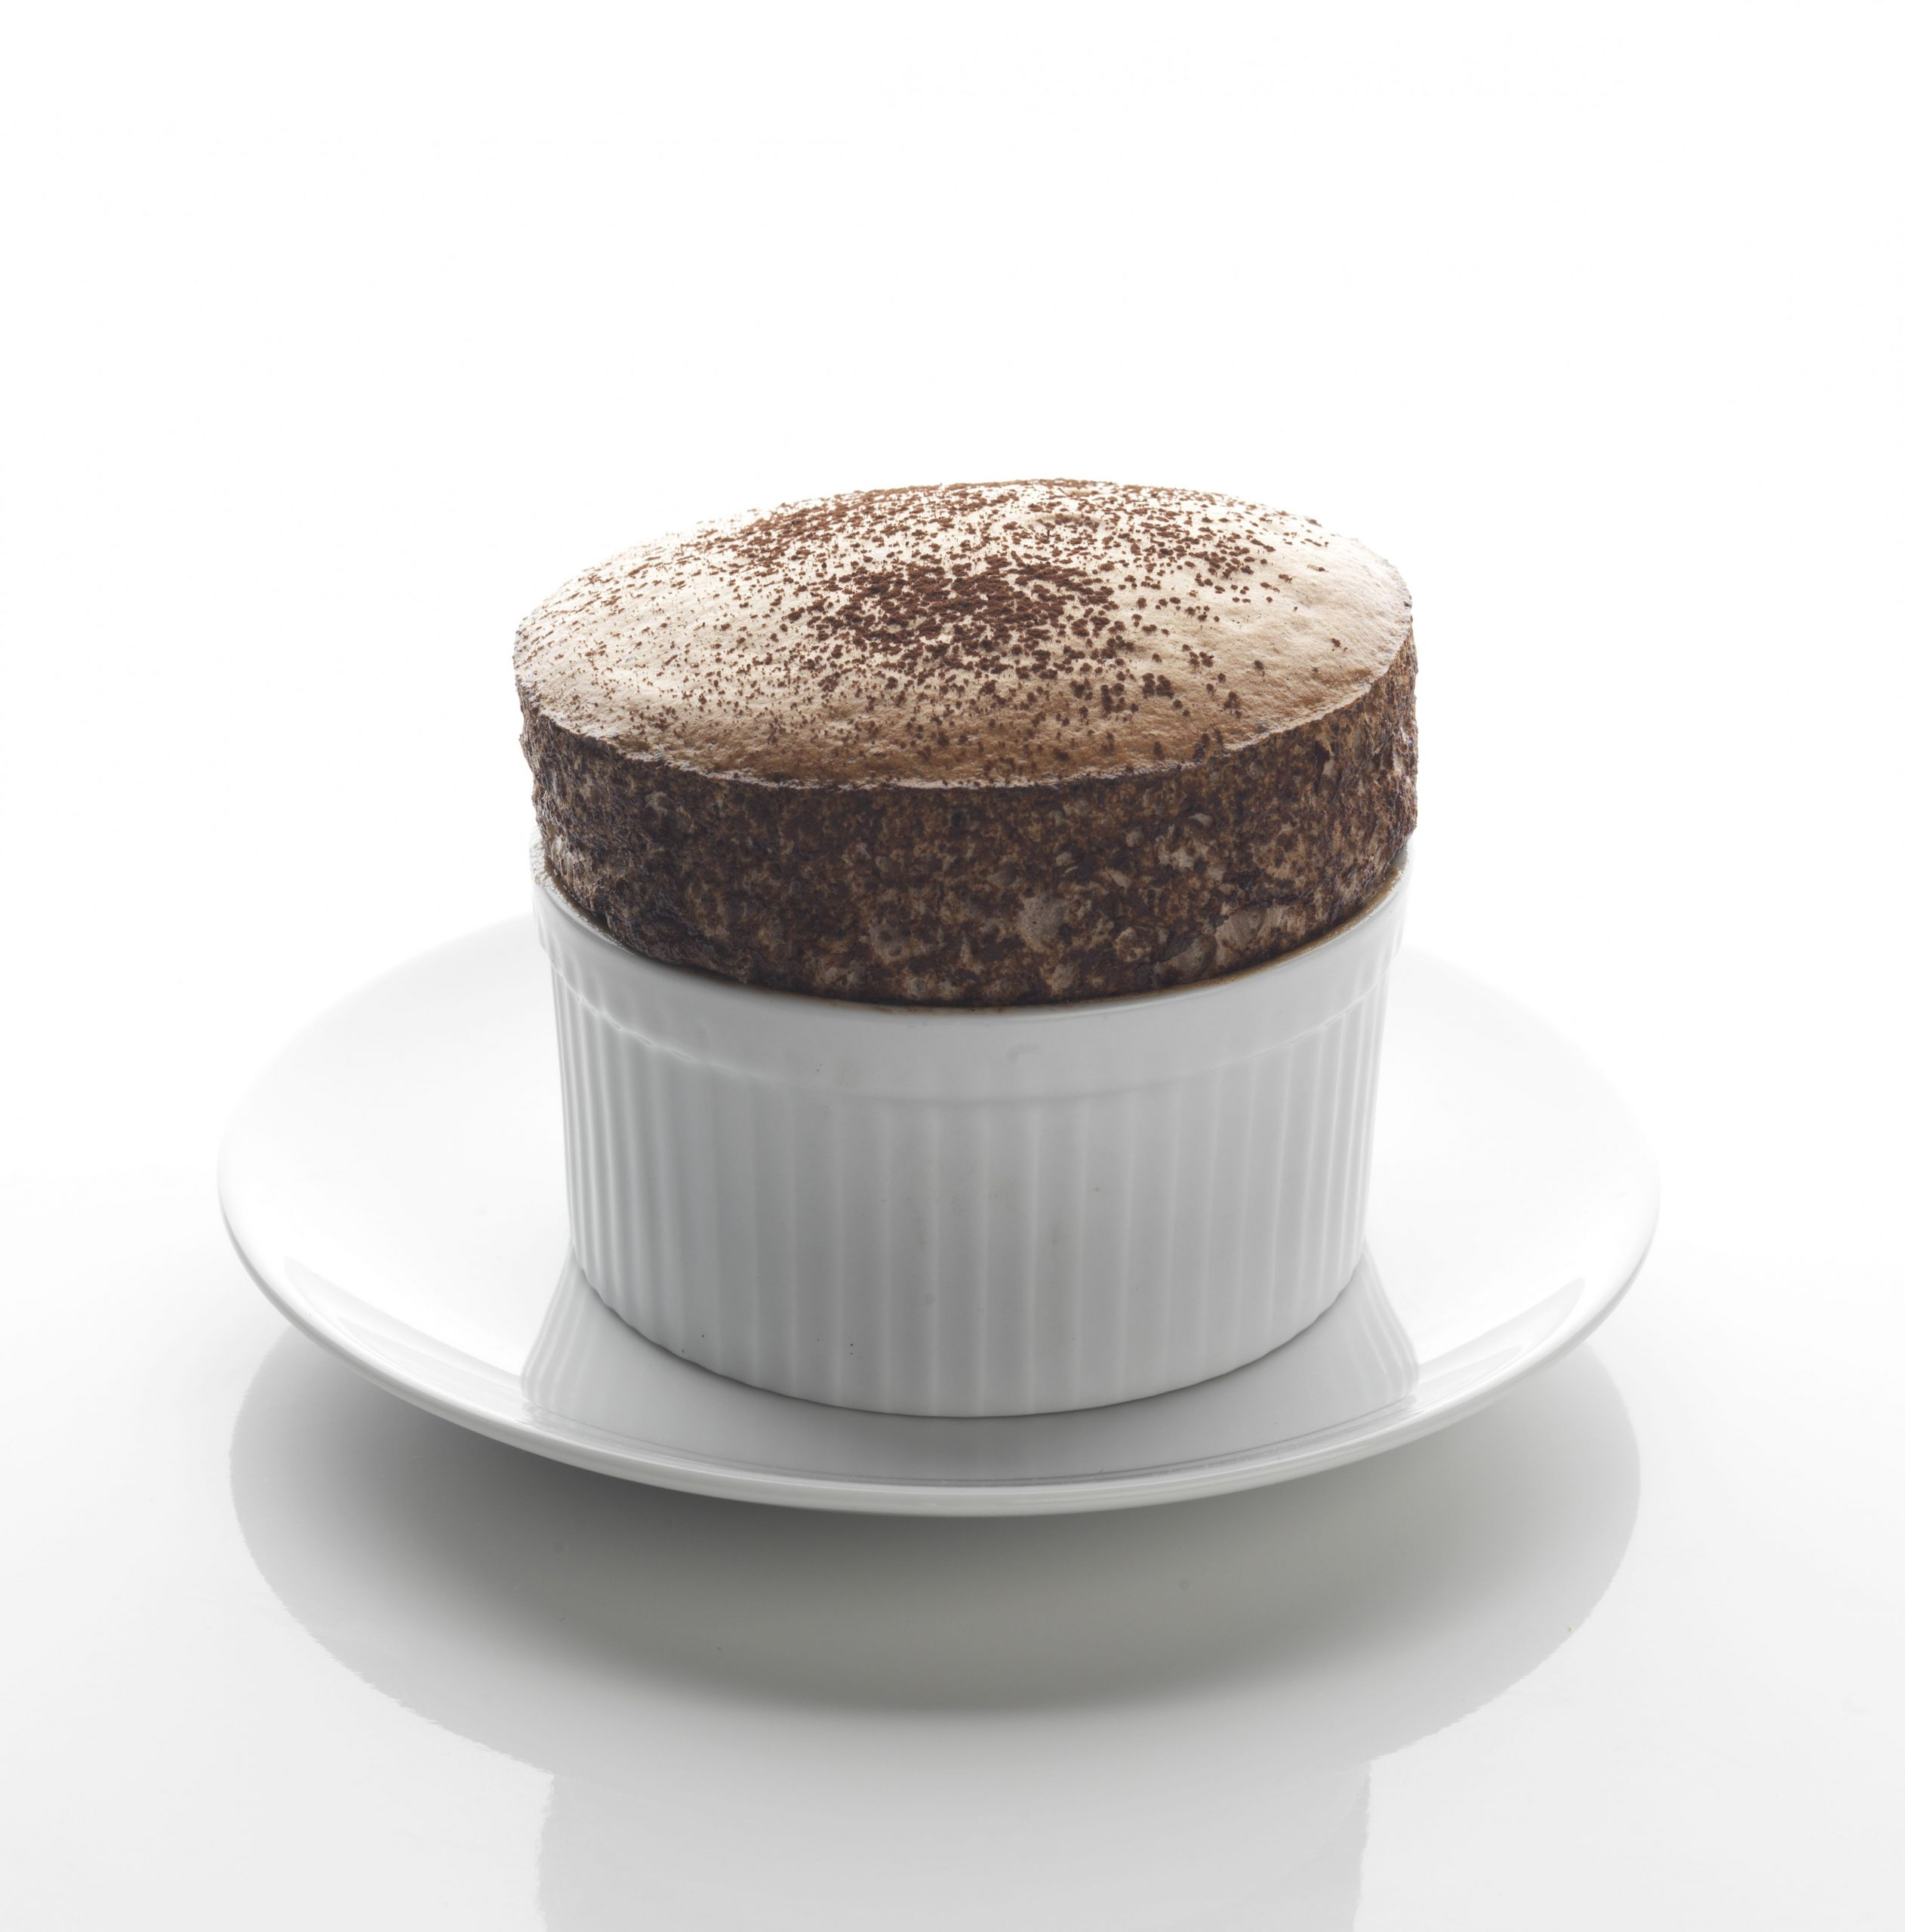 Chocolate soufflé - Recipes Chocolate Souffle